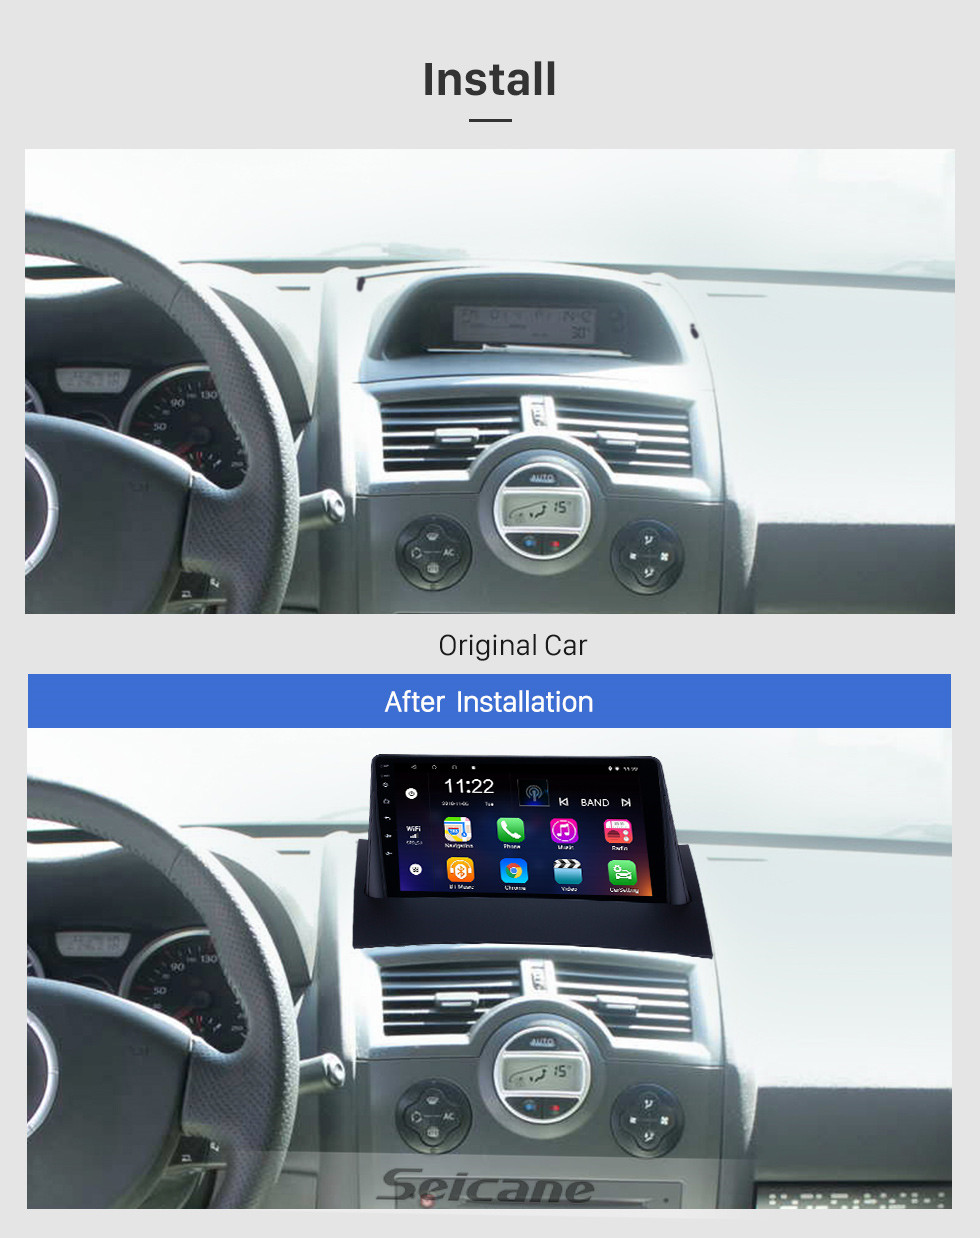 Seicane HD Touchscreen 9 inch Android 10.0 GPS Navigation Radio for 2004-2008 Renault Megane 2 with Bluetooth AUX support Carplay TPMS